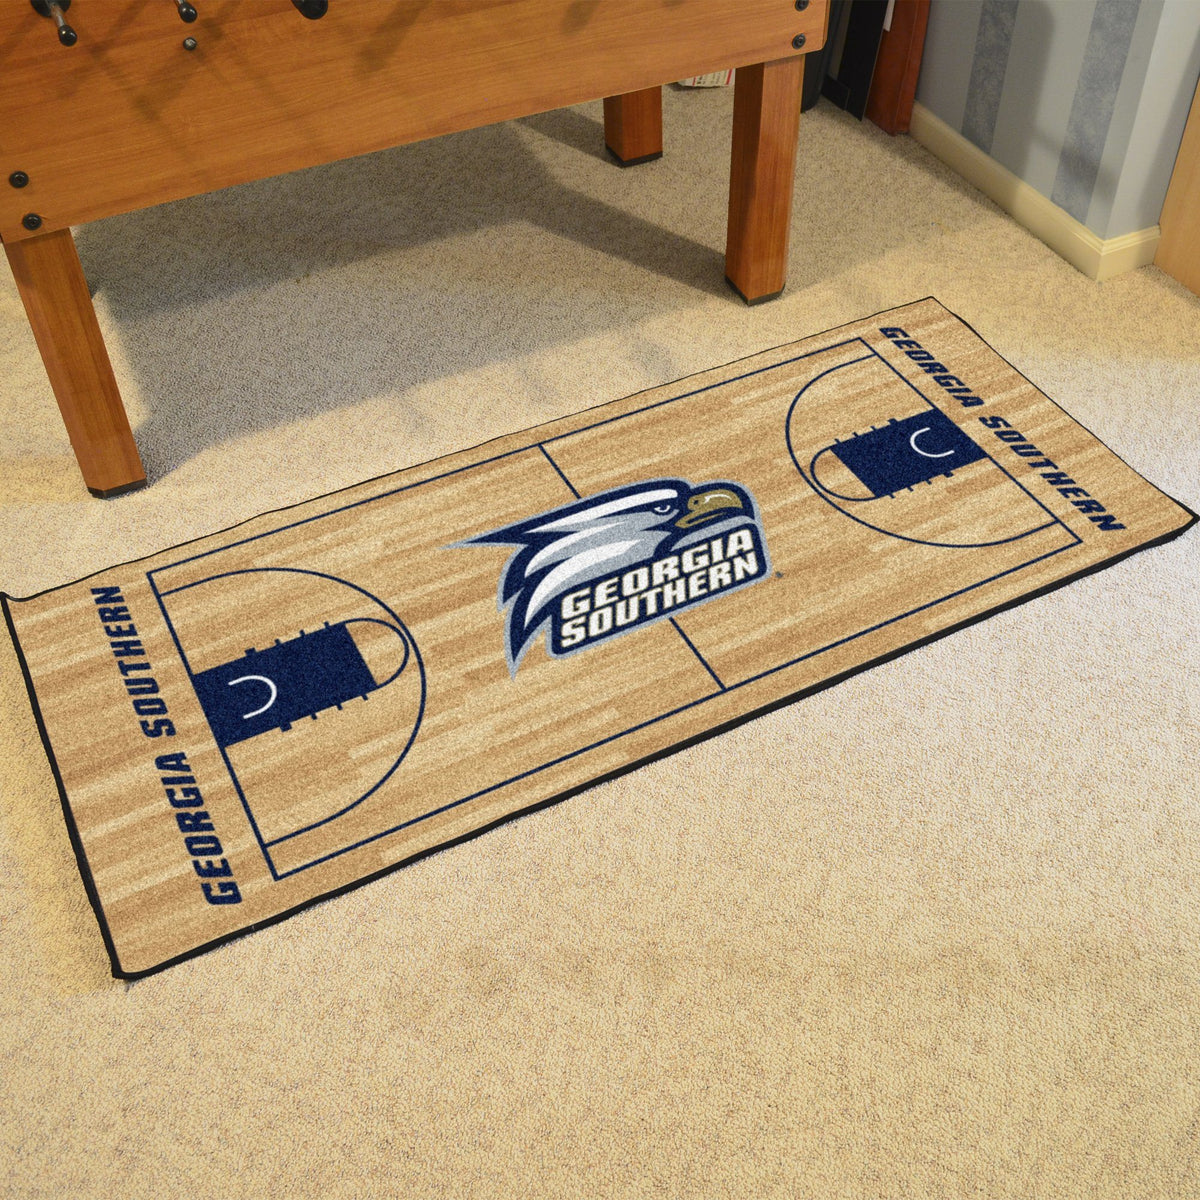 Collegiate - NCAA Basketball Runner Collegiate Mats, Rectangular Mats, NCAA Basketball Runner, Collegiate, Home Fan Mats Georgia Southern